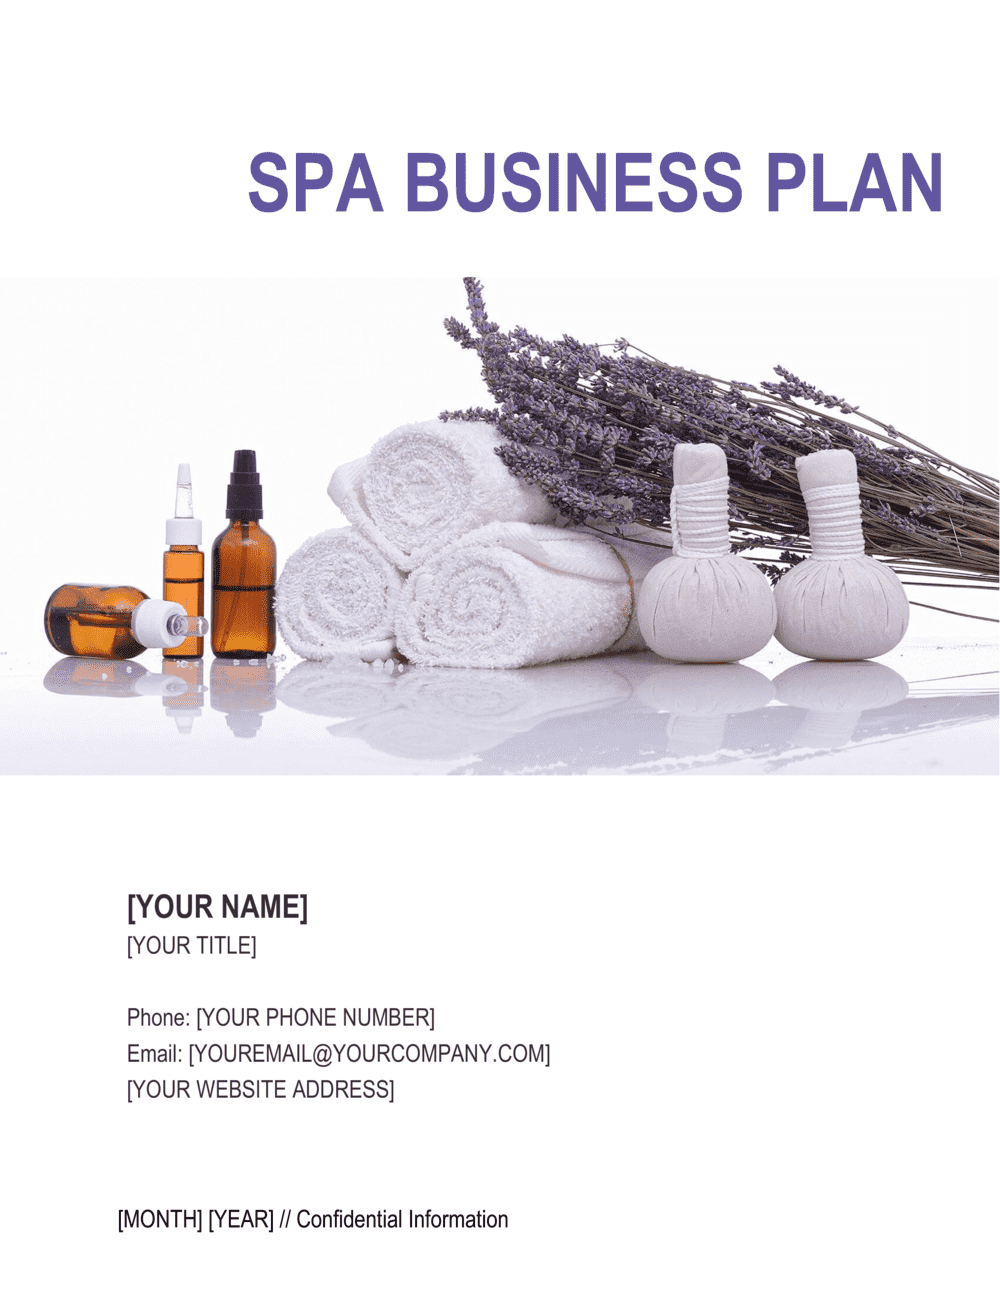 Business-in-a-Box's Spa Business Plan Template